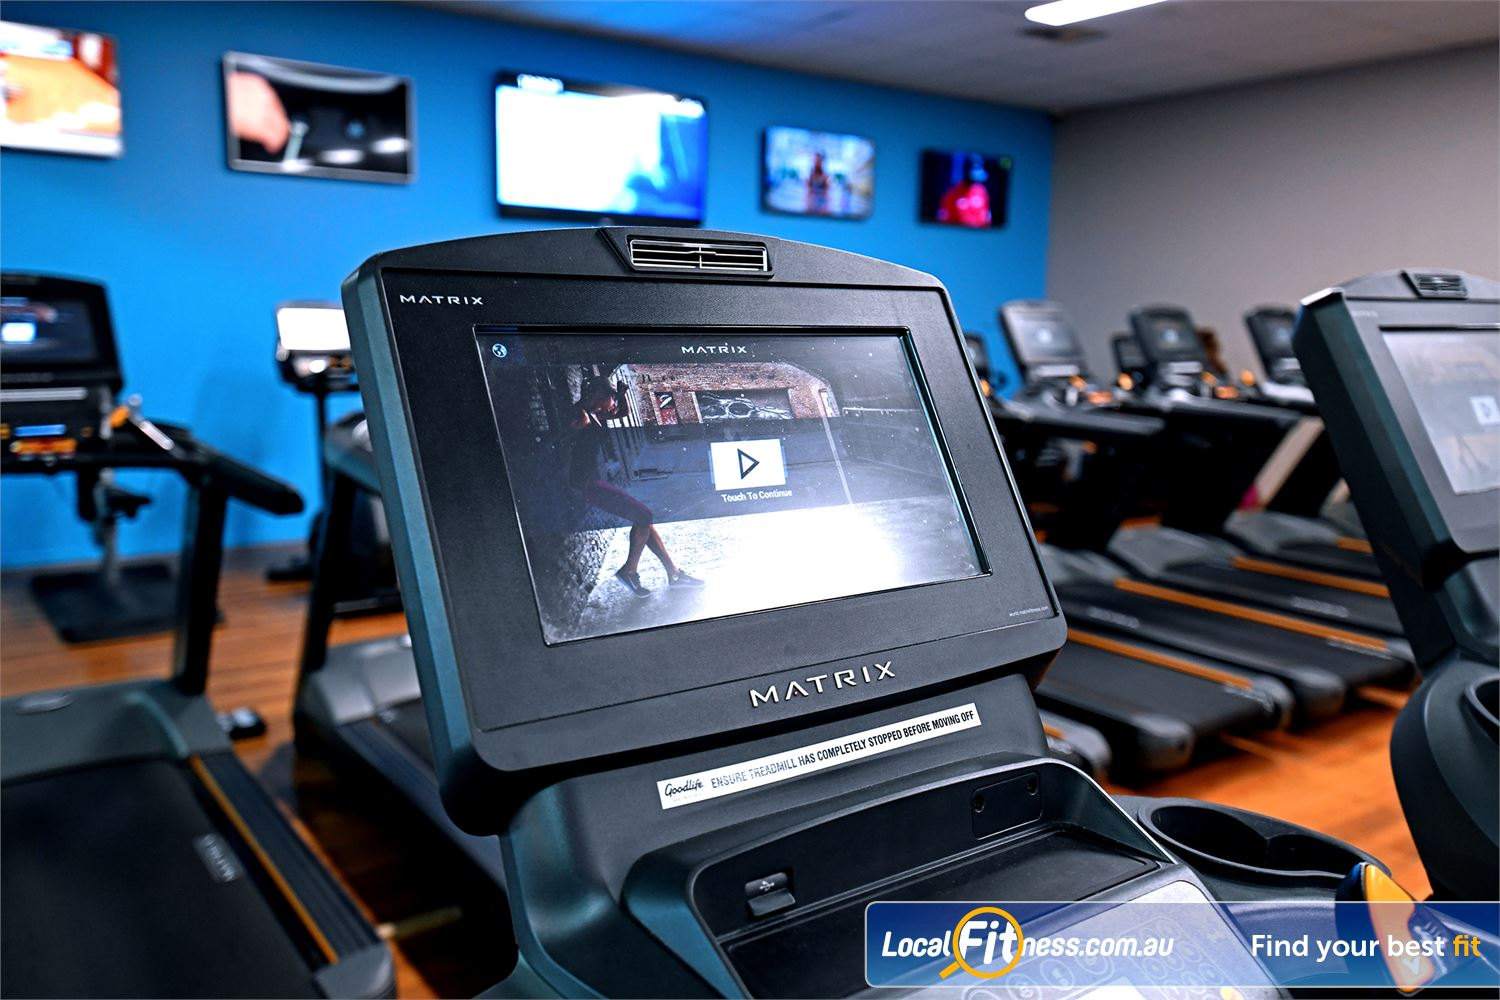 Goodlife Health Clubs Hoppers Crossing State of the art cardio with personal entertainment screens.